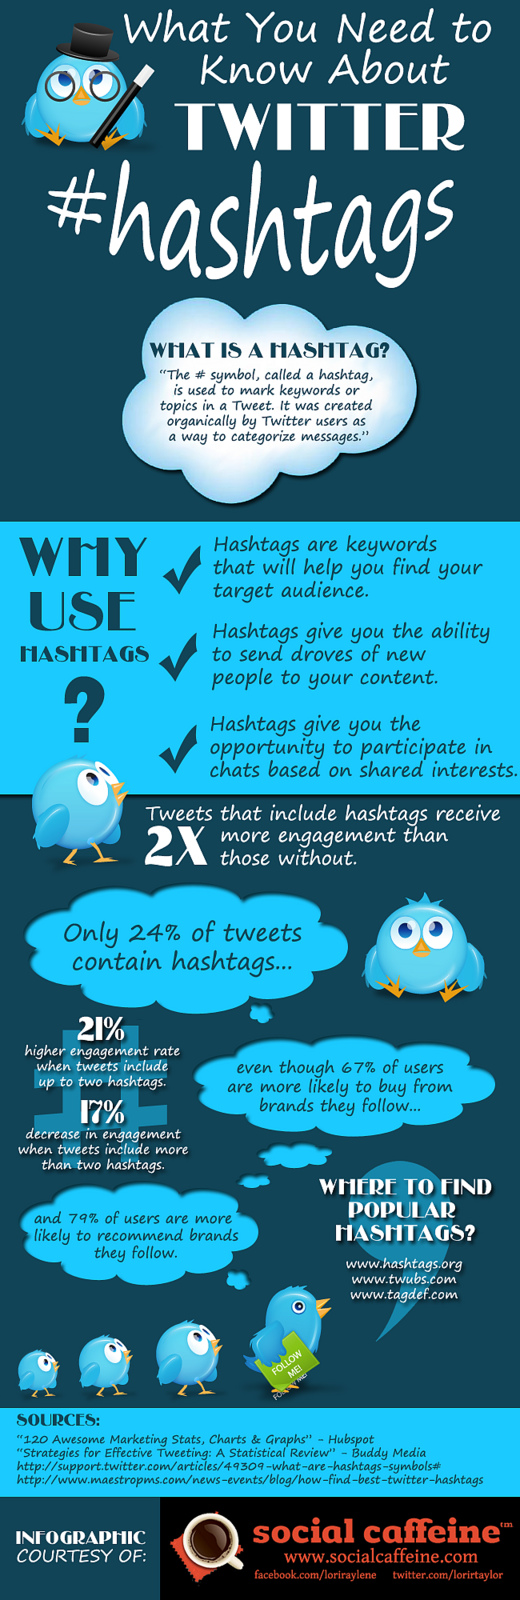 Twitter Hashtag The Anatomy of Twitter Hashtag [Infographic]